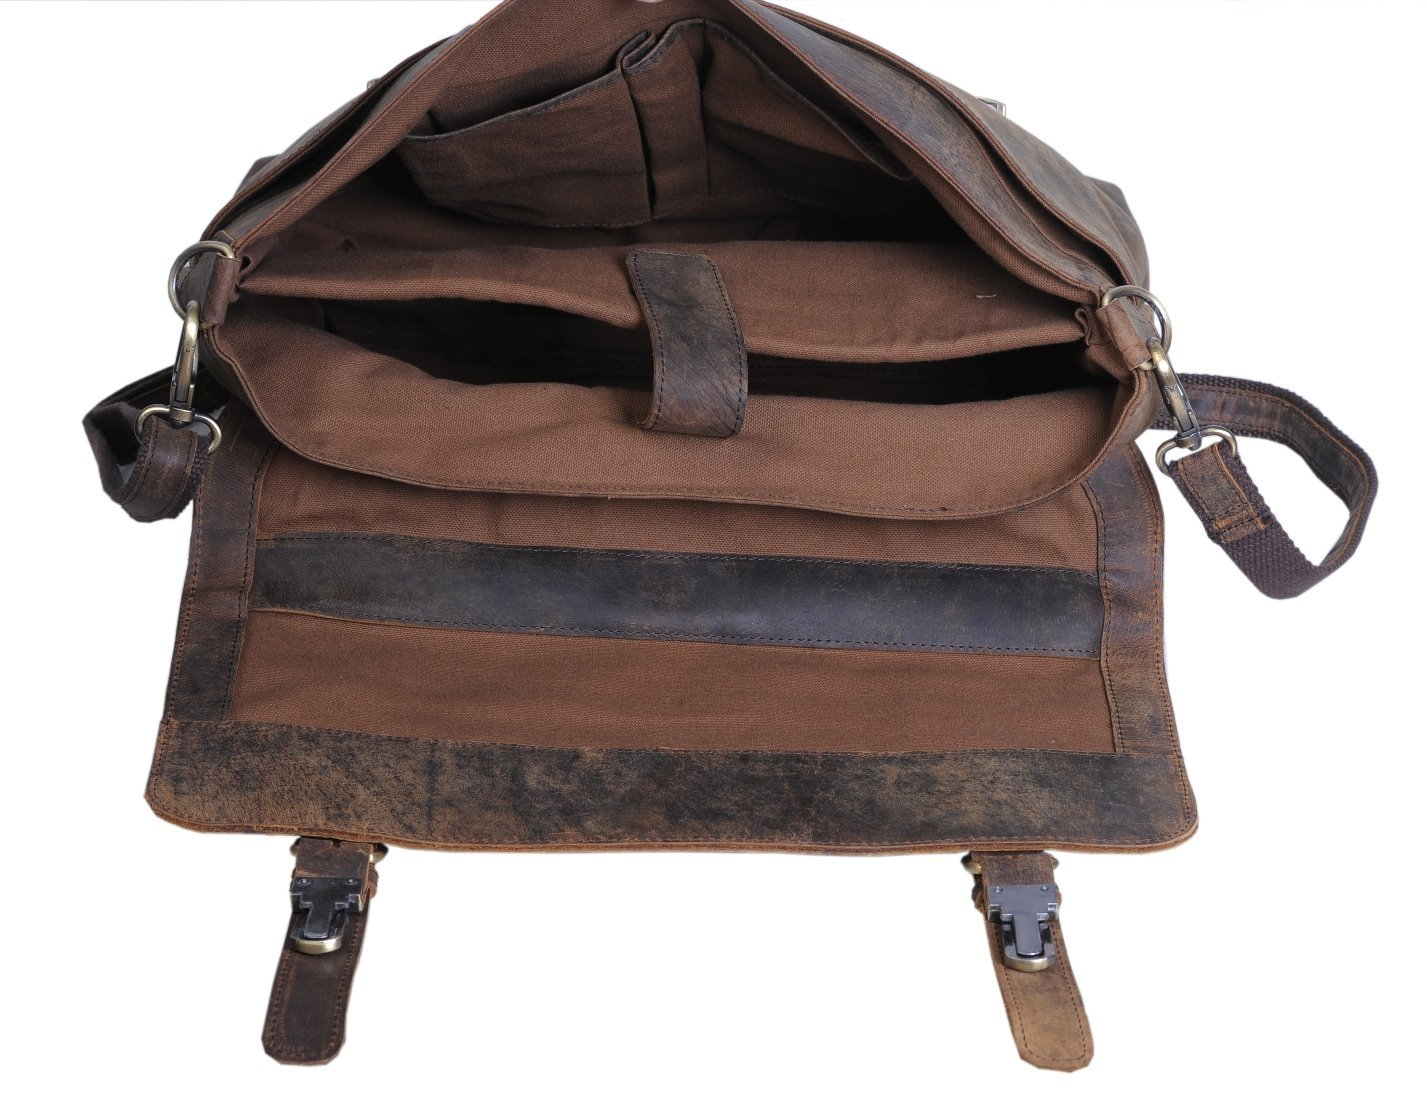 KomalC 15 Inch Retro Buffalo Hunter Leather Laptop (Fits Upto 15.6 Inch Laptop) Messenger Bag Office Briefcase College Bag